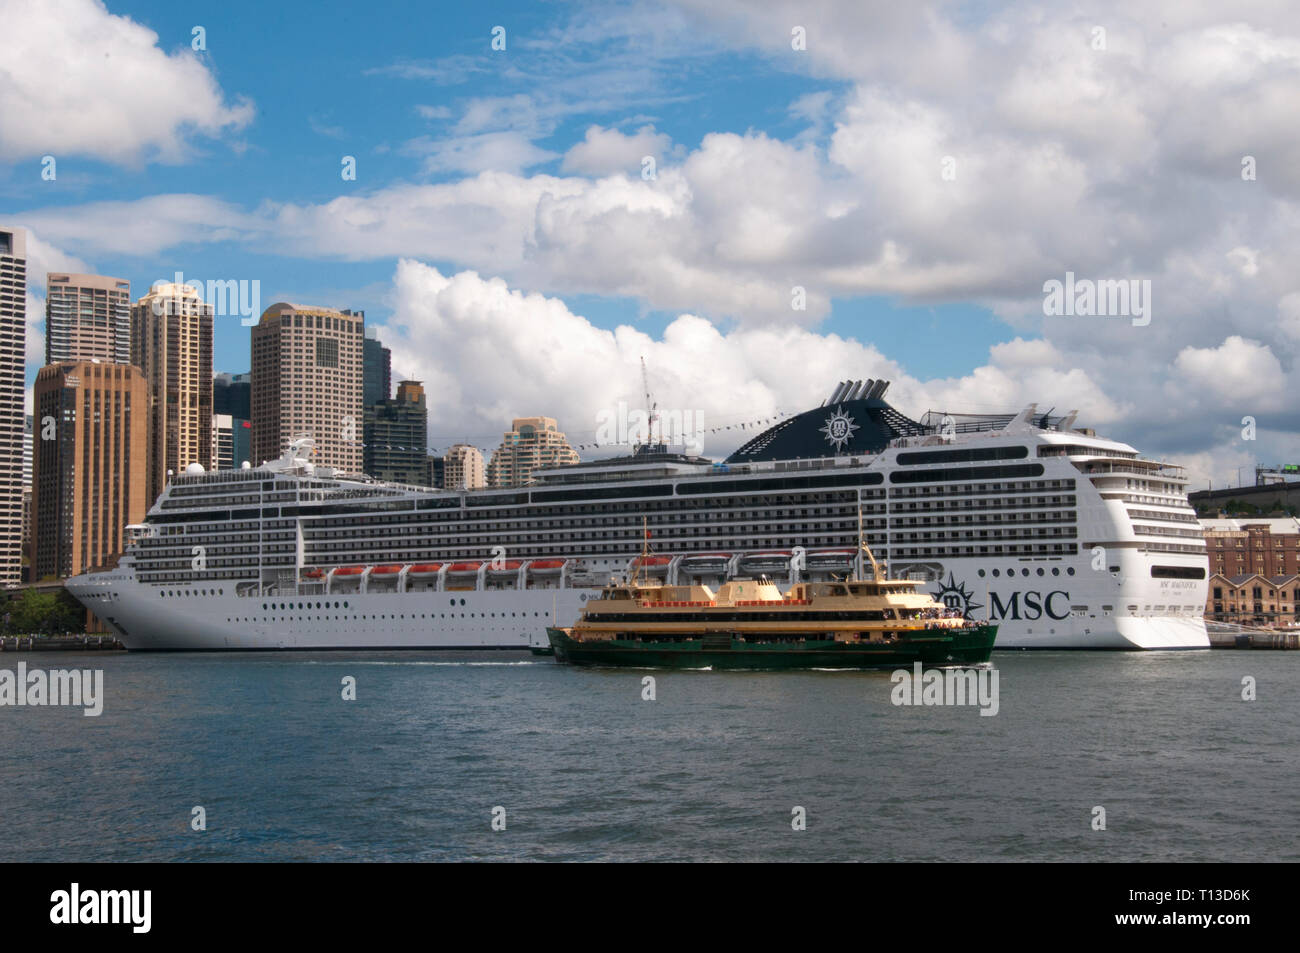 A Sydney Harbour commuter ferry steaming past the 'MSC Magnifica' cruise liner moored at Circular Quay, Sydney, Australia Stock Photo